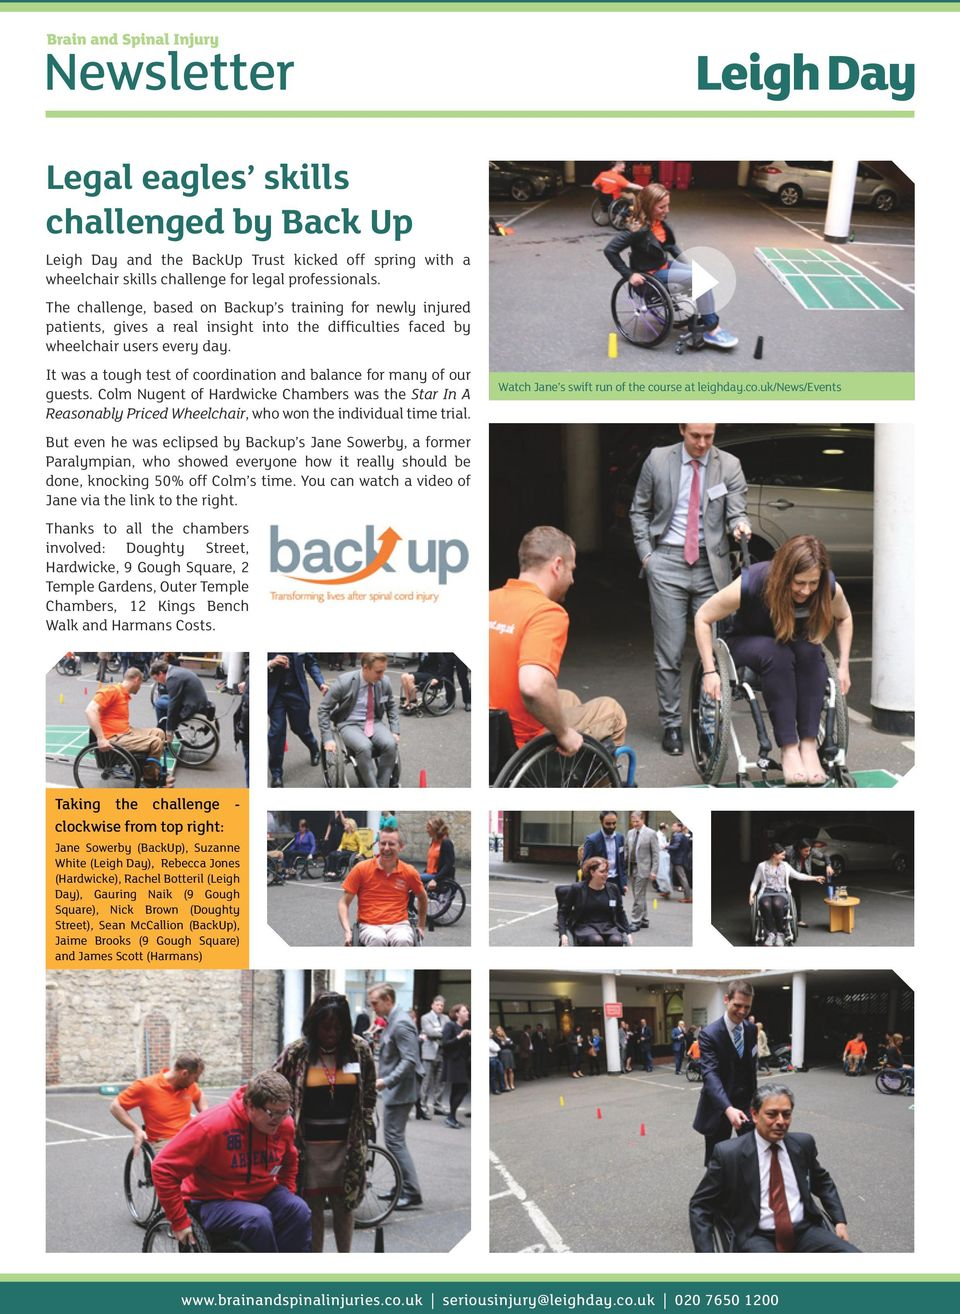 It was a tough test of coordination and balance for many of our guests. Colm Nugent of Hardwicke Chambers was the Star In A Reasonably Priced Wheelchair, who won the individual time trial.